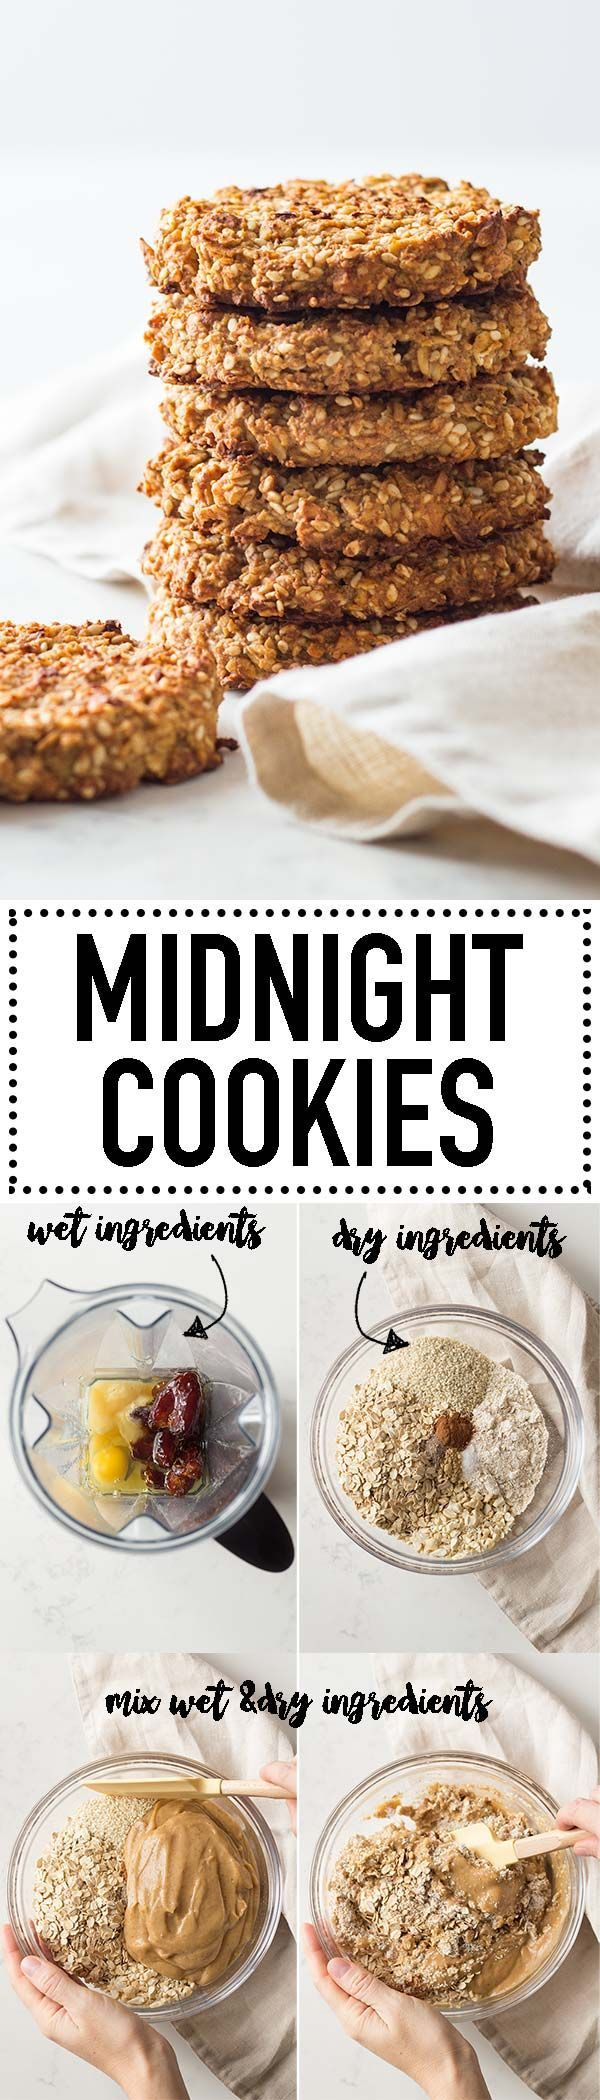 Midnight Cookies are made of all insomnia-fighting ingredients! The best midnight snack recipe ever! Refined sugar-free but still deliciously sweet and full of healthy fats to keep you satisfied all night. via @greenhealthycoo